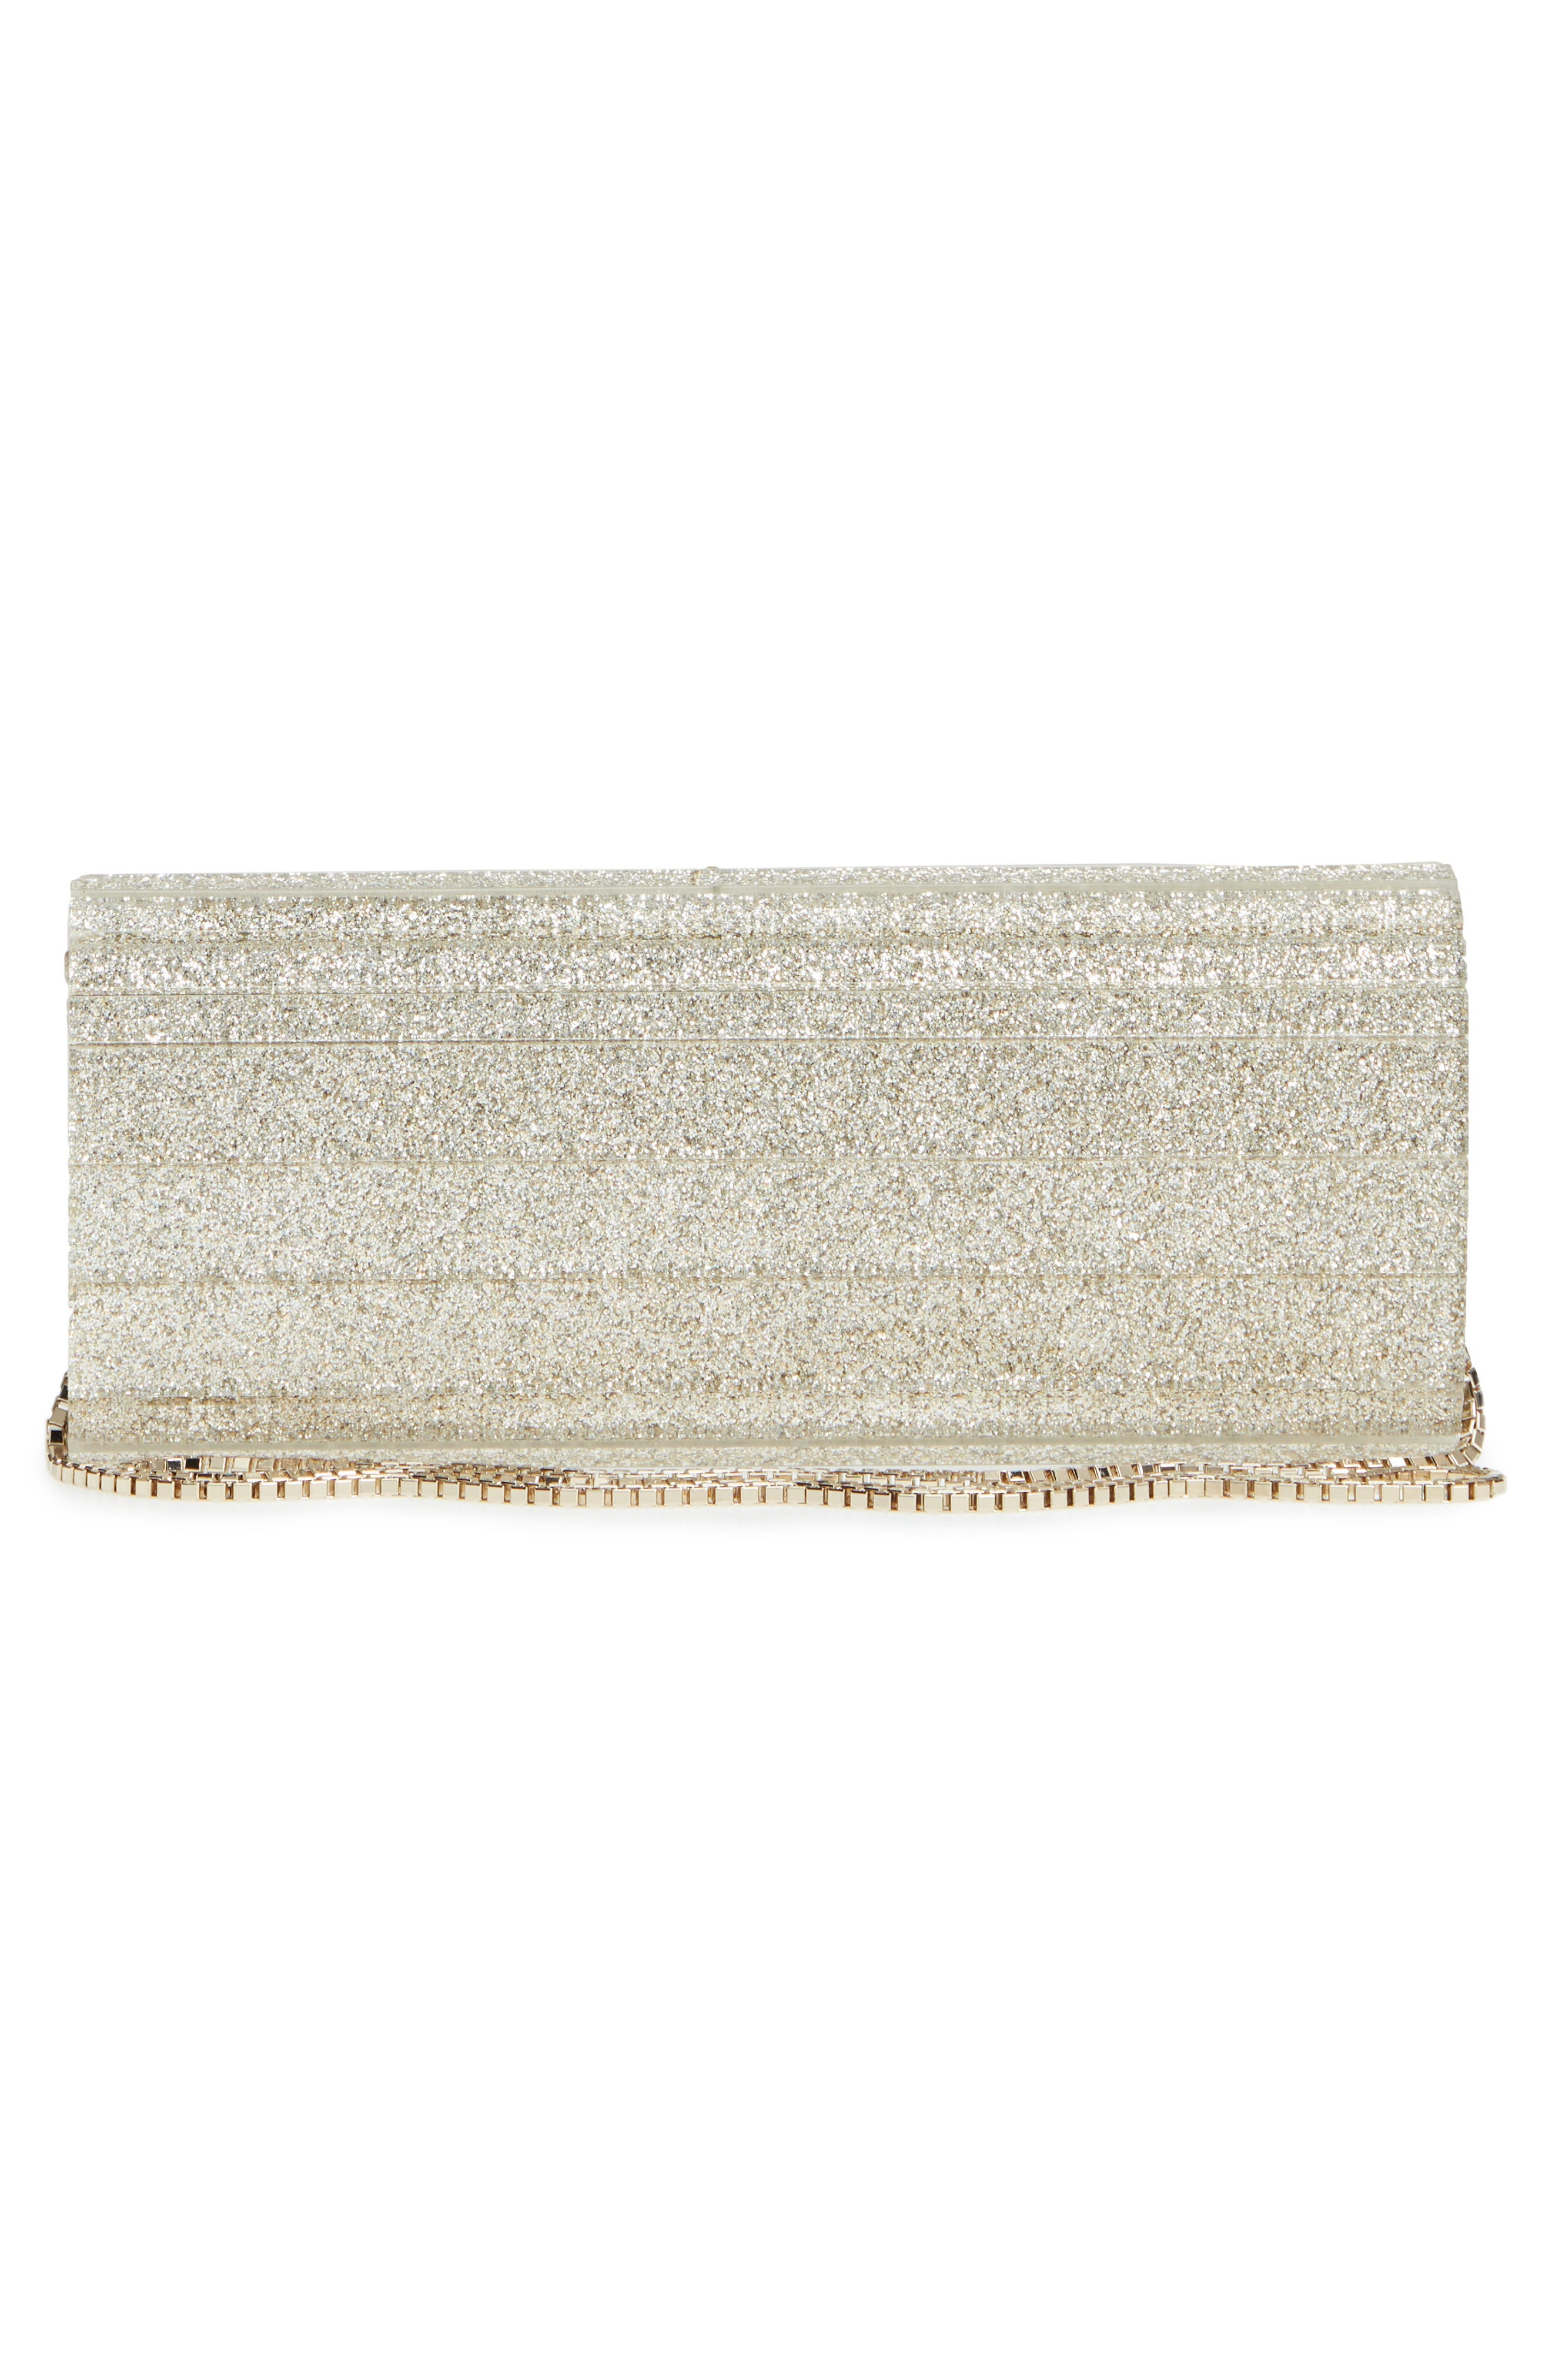 'Sweetie' Clutch,                             Alternate thumbnail 4, color,                             Champagne Glitter